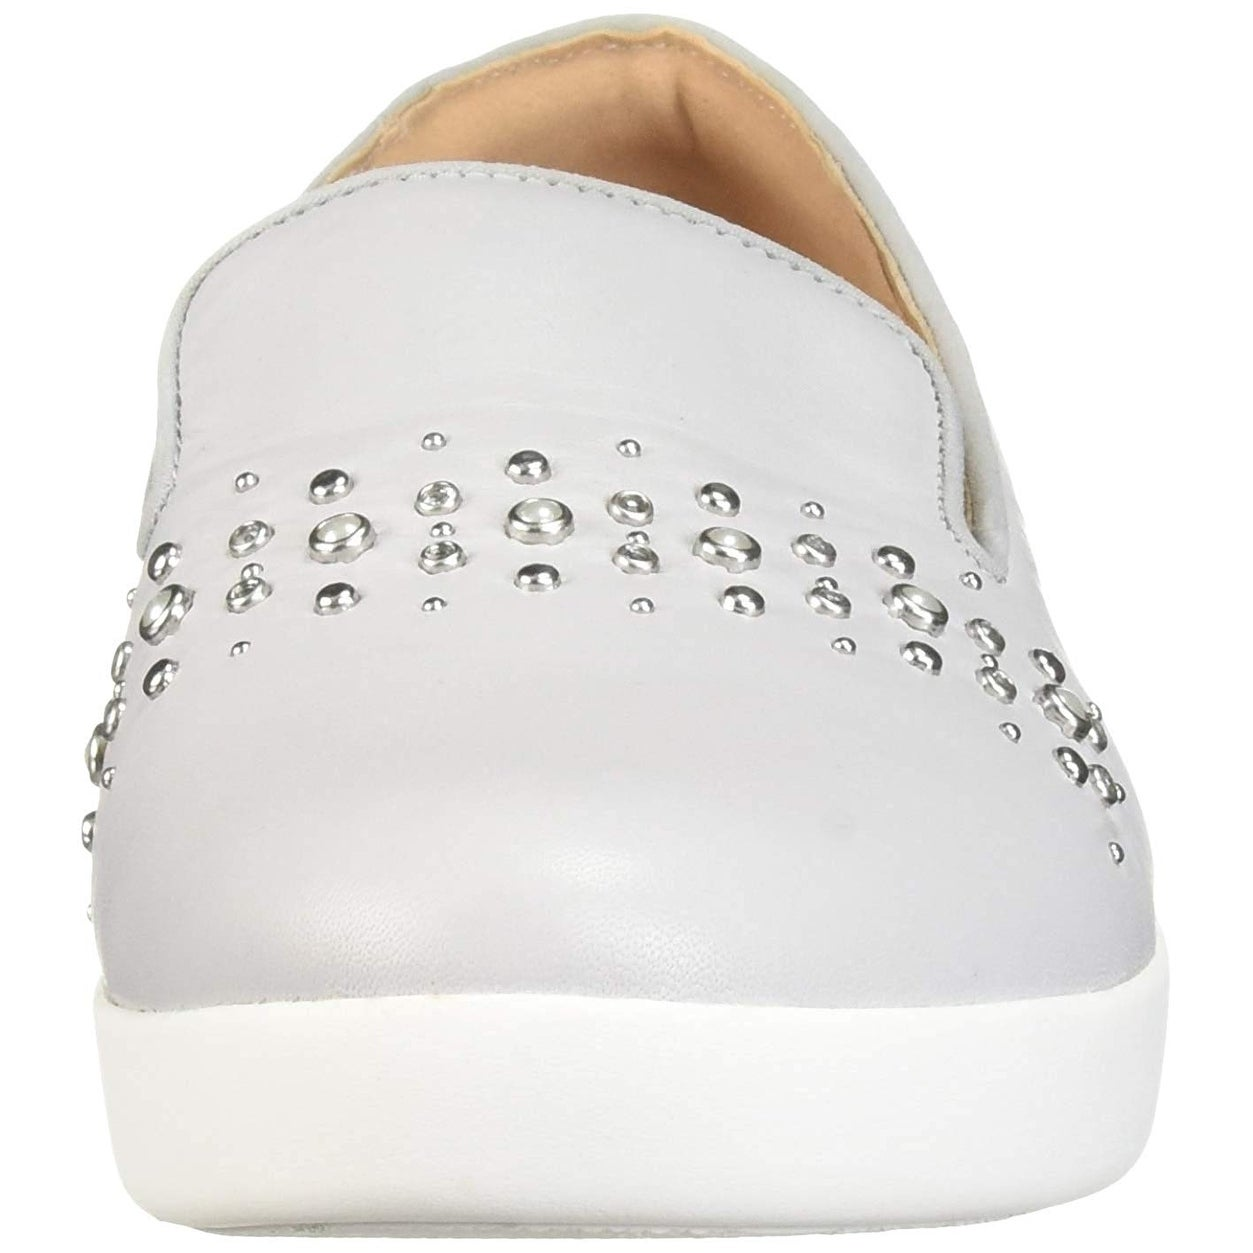 ca120c91d7e Shop FitFlop Women s Audrey Pearl Stud Smoking Slippers Loafer Flat - Free  Shipping Today - Overstock - 27549925